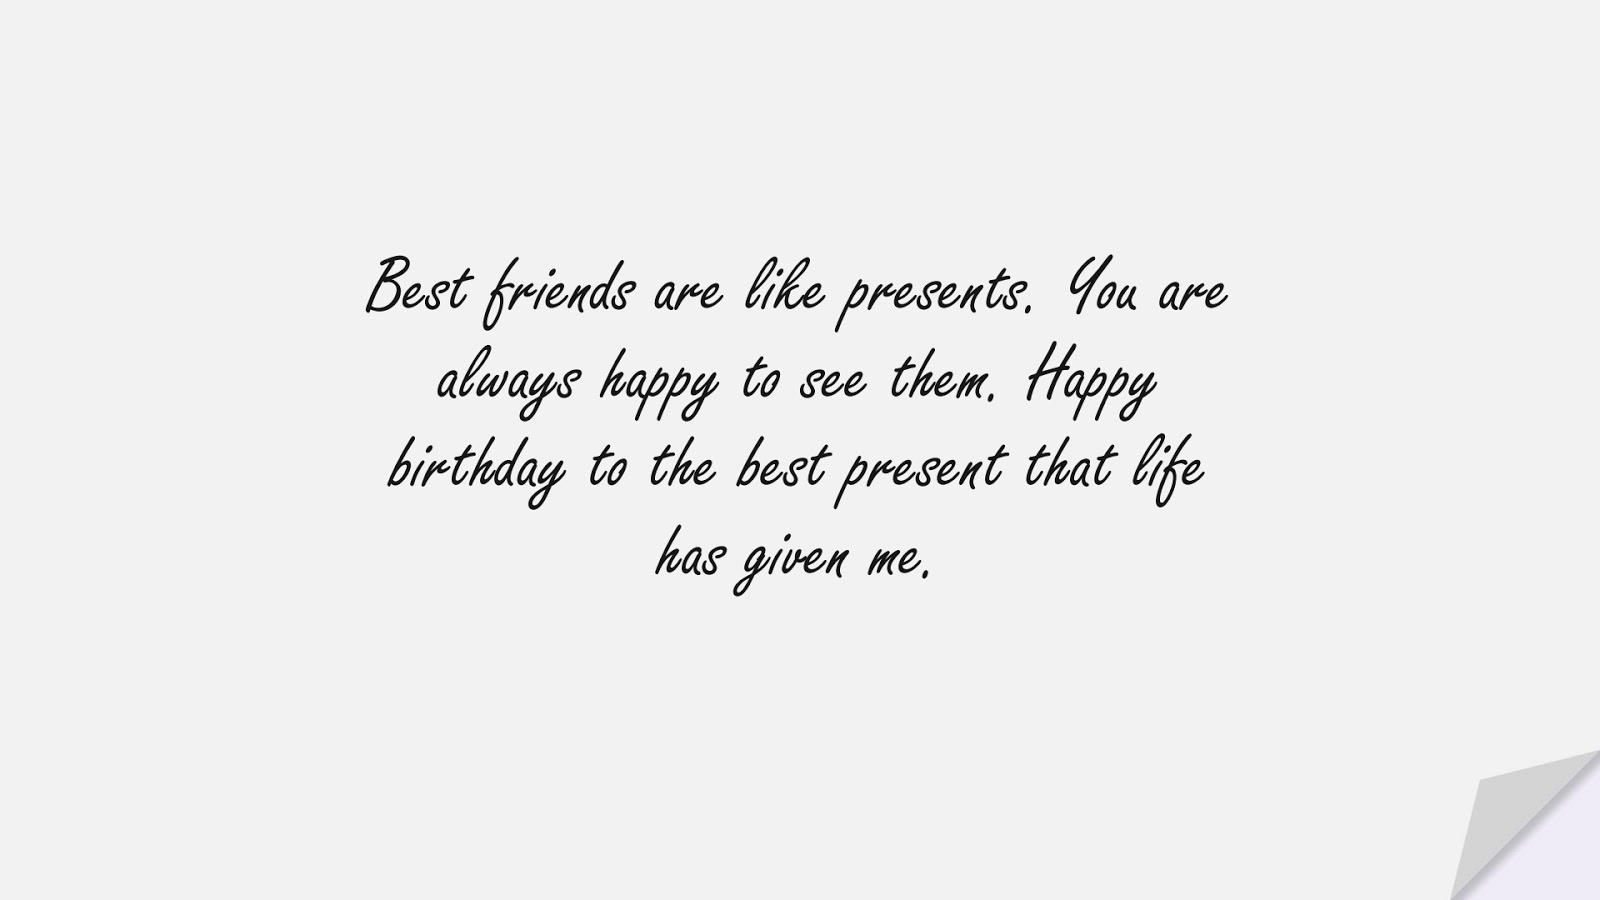 Best friends are like presents. You are always happy to see them. Happy birthday to the best present that life has given me.FALSE